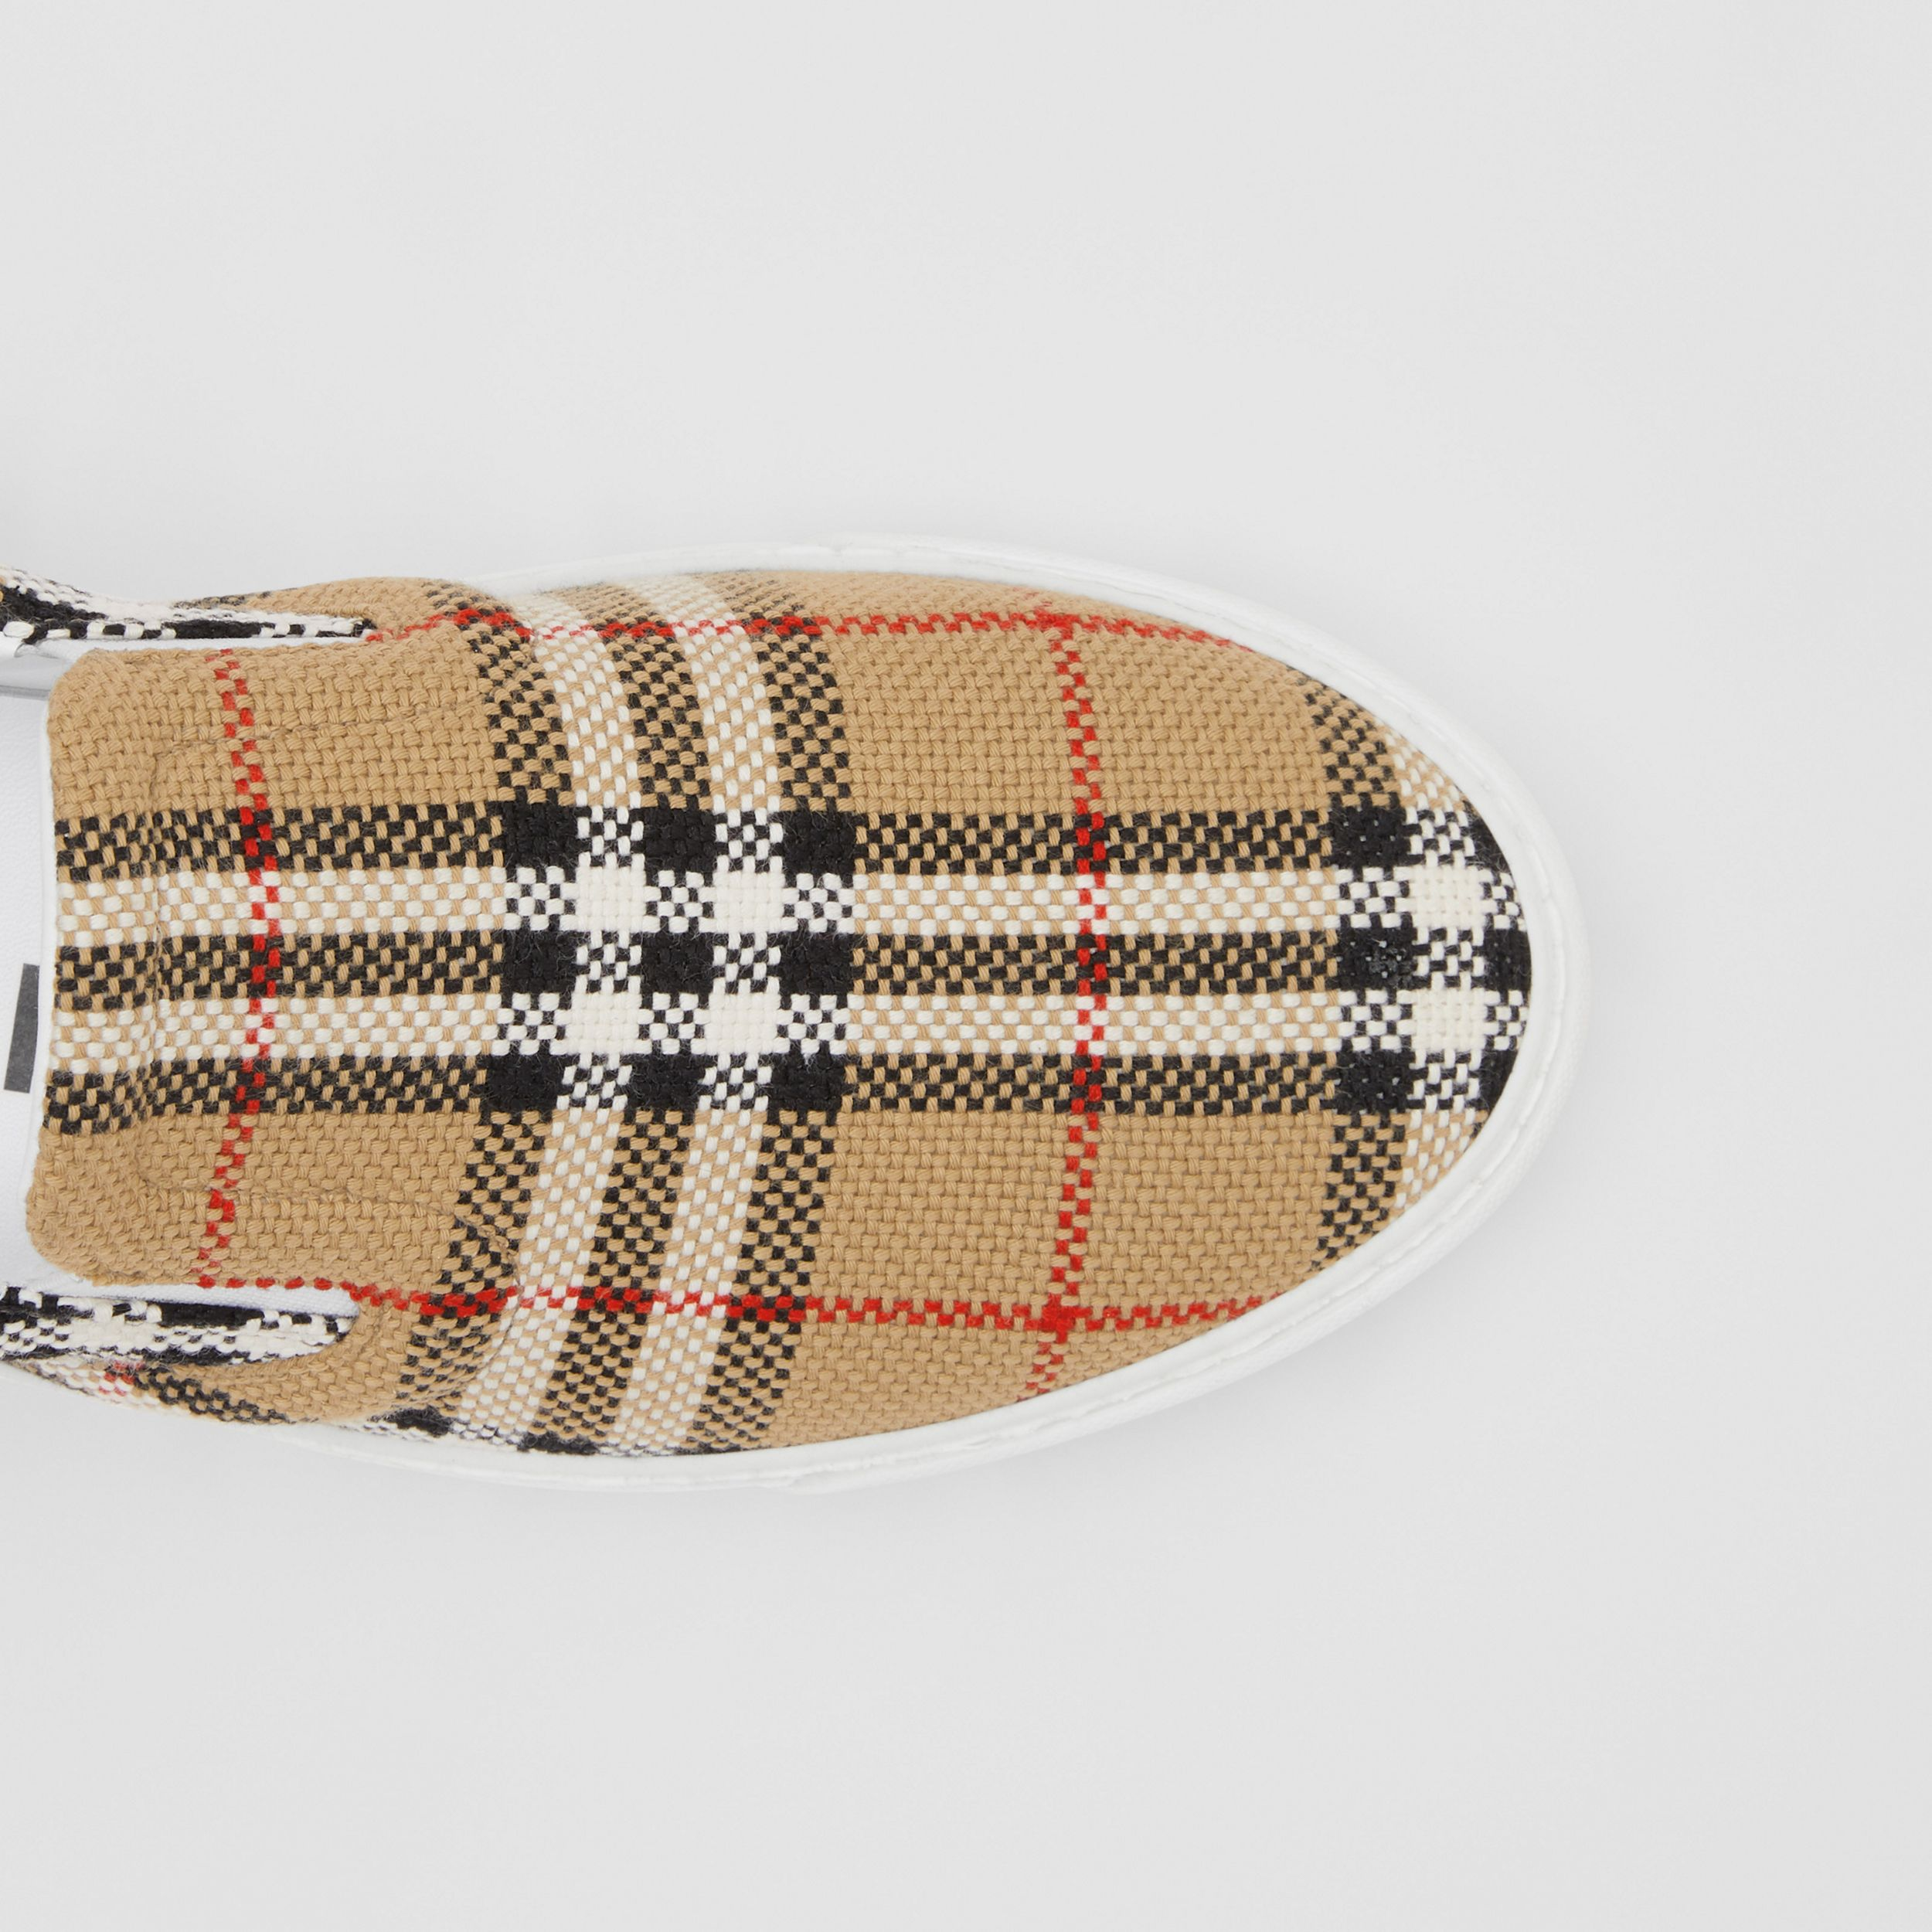 Bio-based Sole Latticed Cotton Slip-on Sneakers in Archive Beige - Women | Burberry Australia - 2